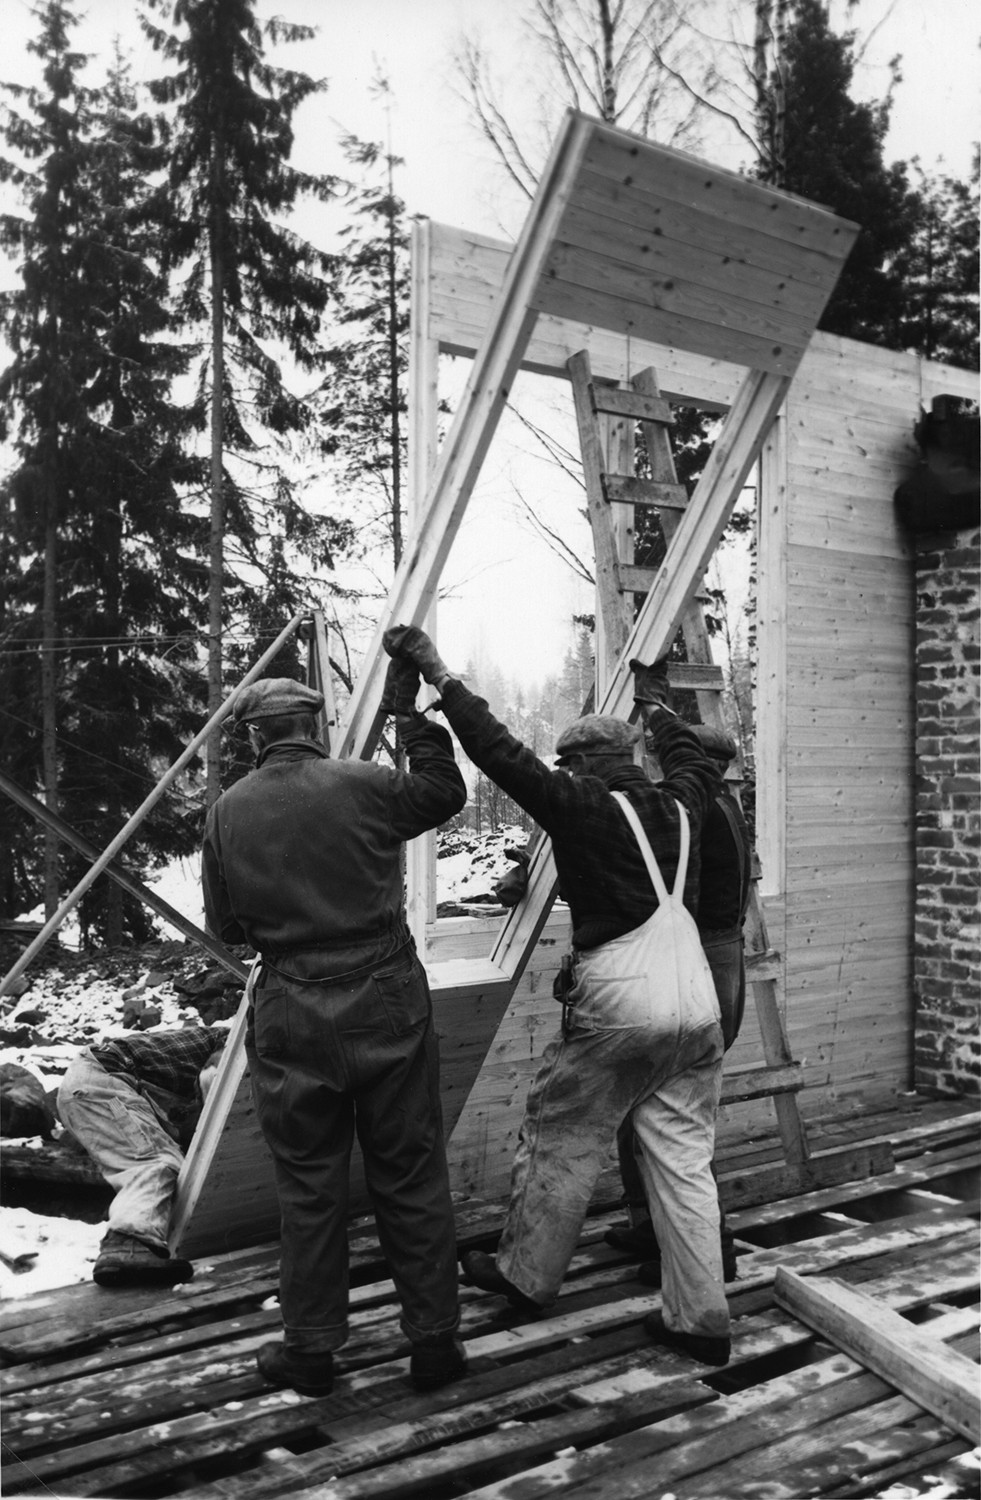 A black and white photo of three workers putting up a wall of a wooden Puutalo school.